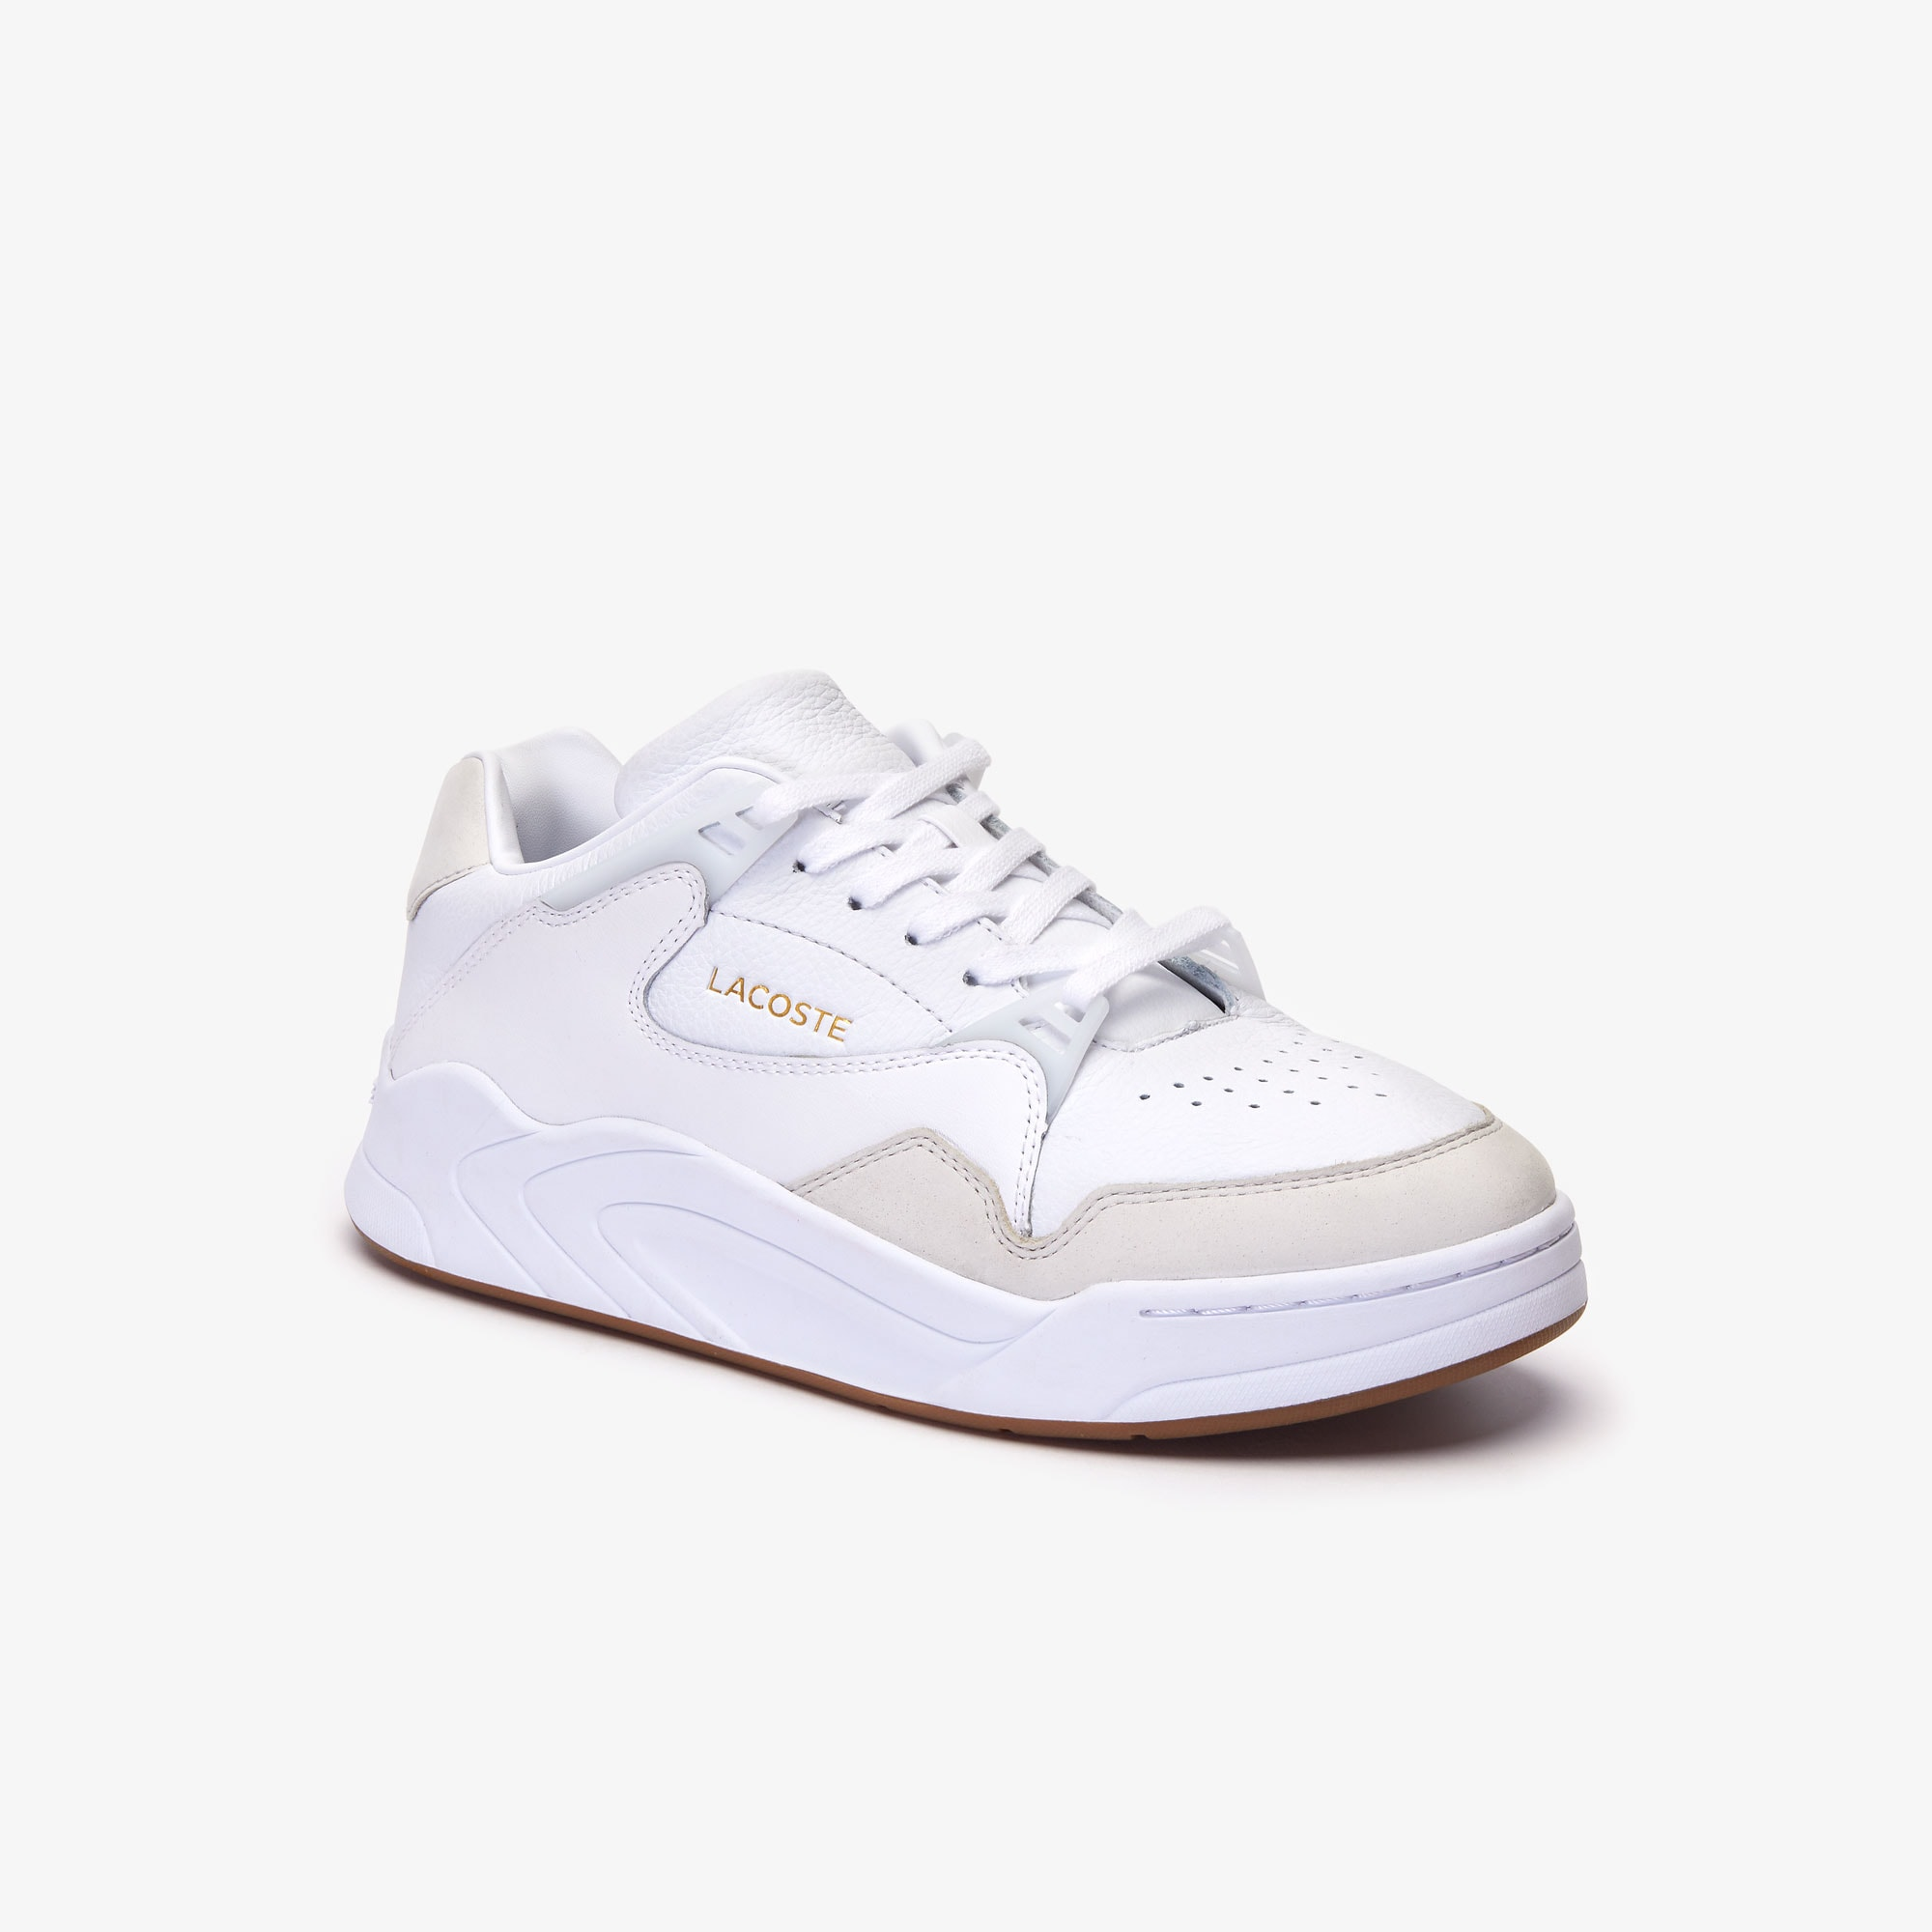 Lacoste Sneakers Men's Court Slam Leather Sneakers